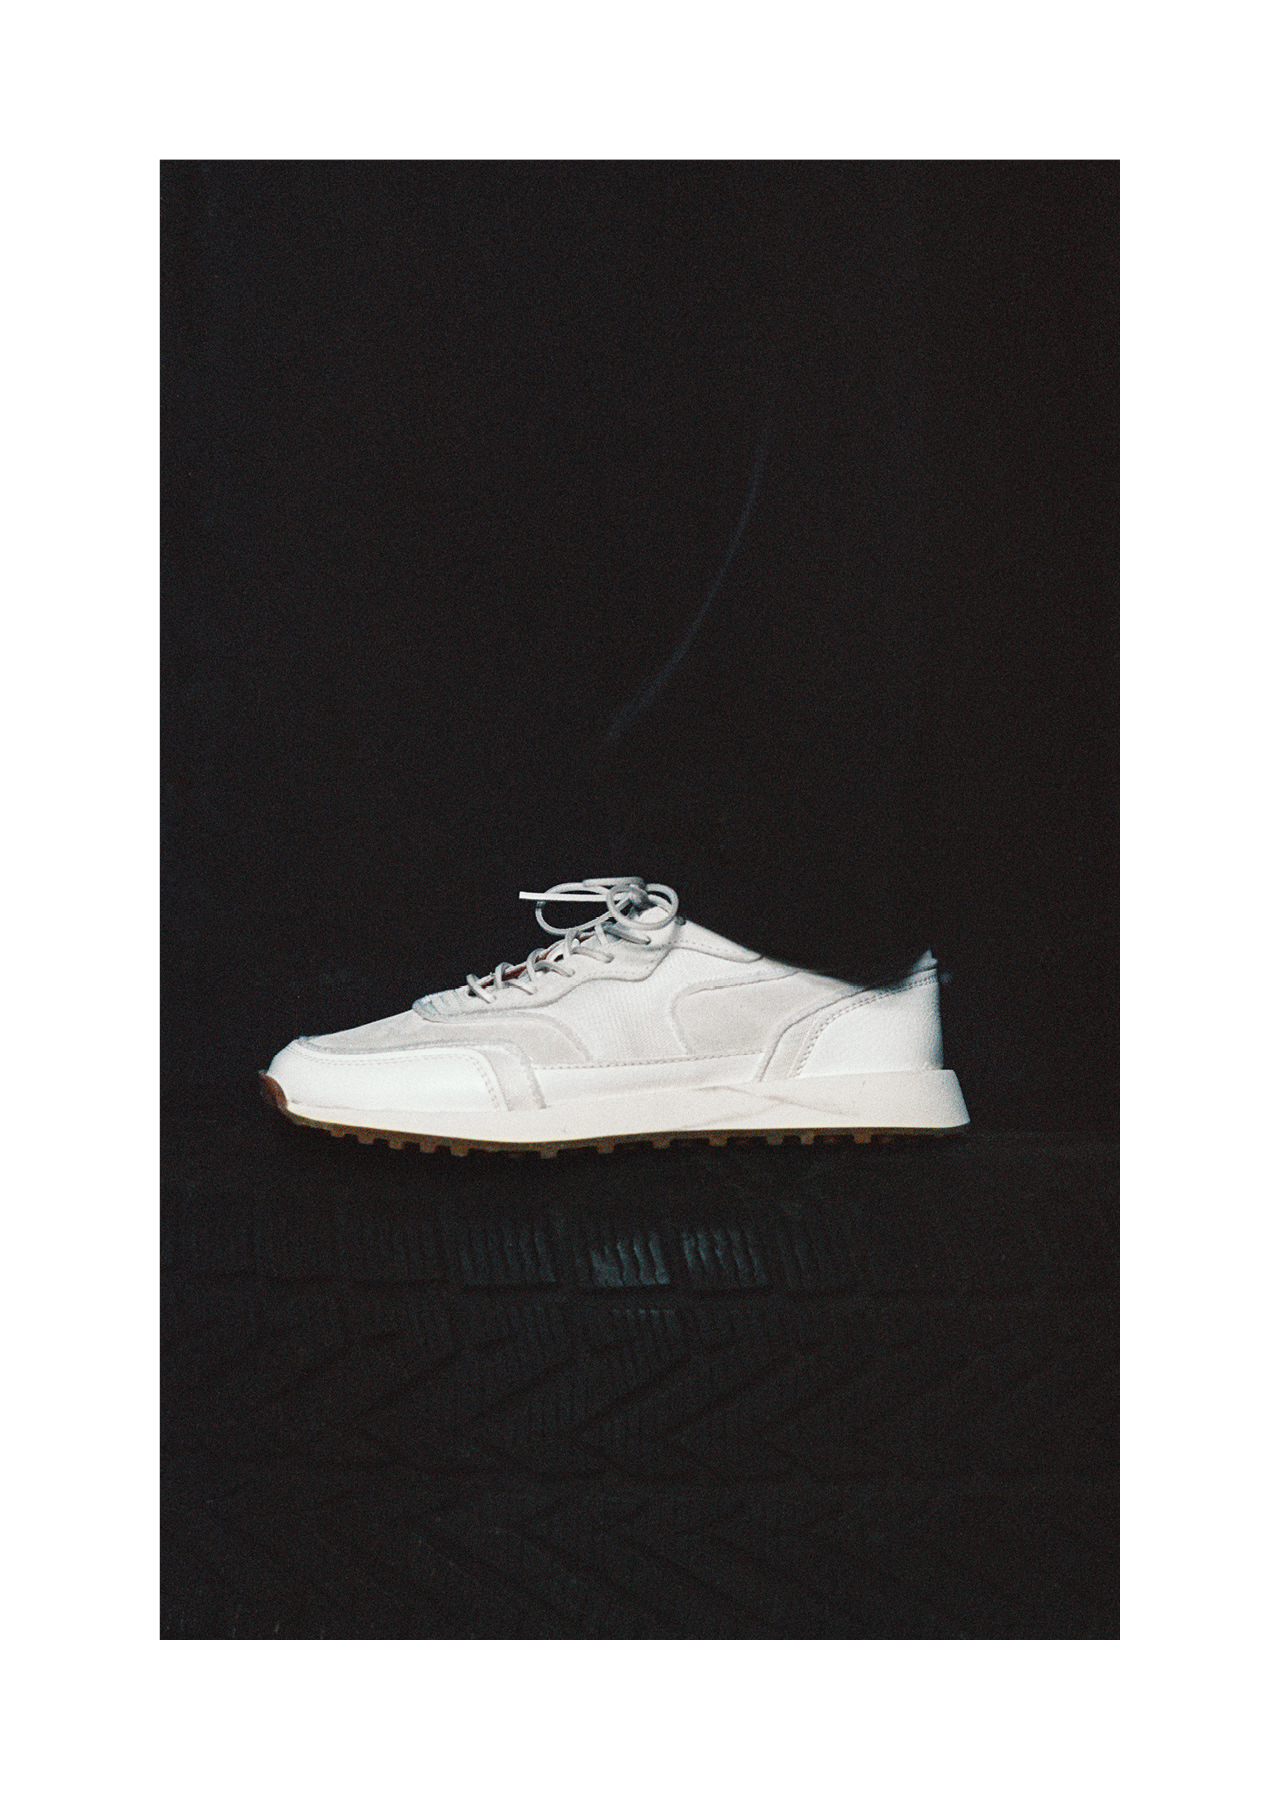 VENTURA SNEAKERS IN WHITE NYLON MESH AND SUEDE